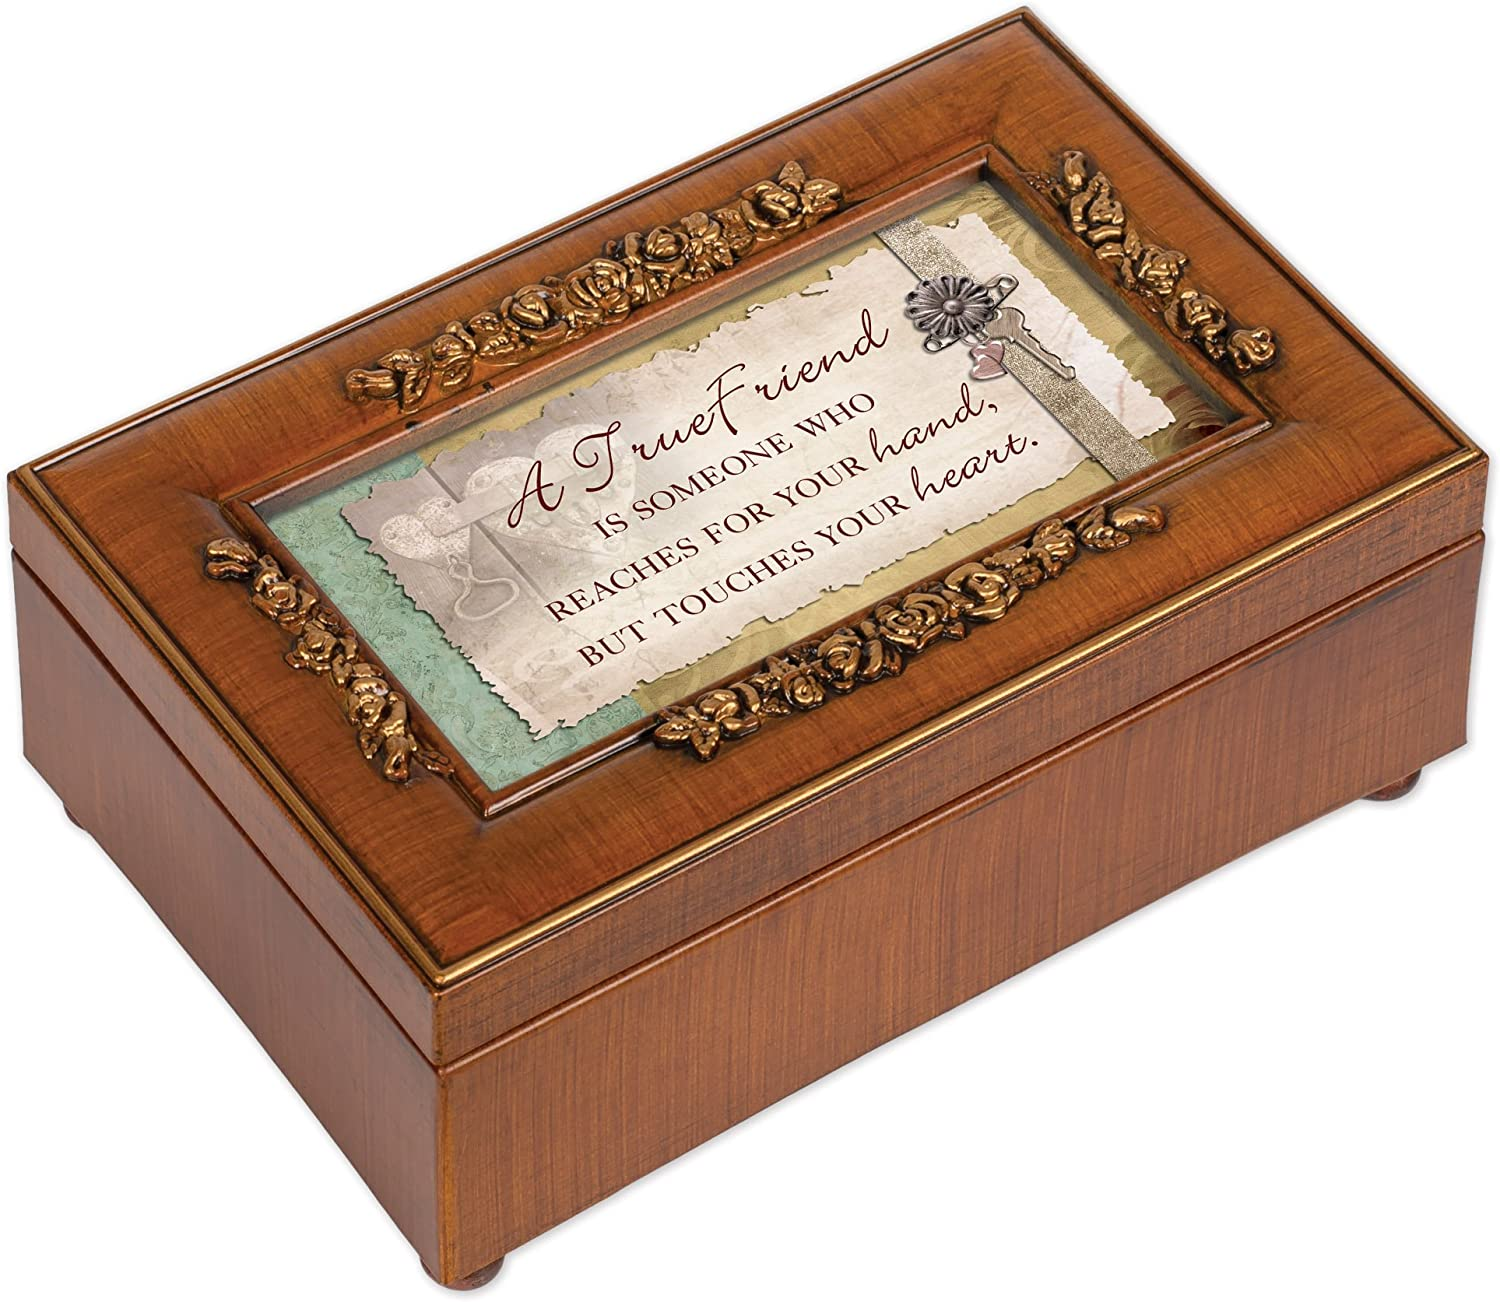 Cottage Garden A True Friend Rich Walnut Finish Petite Jewelry Music Box - Plays That?s What Friends are for